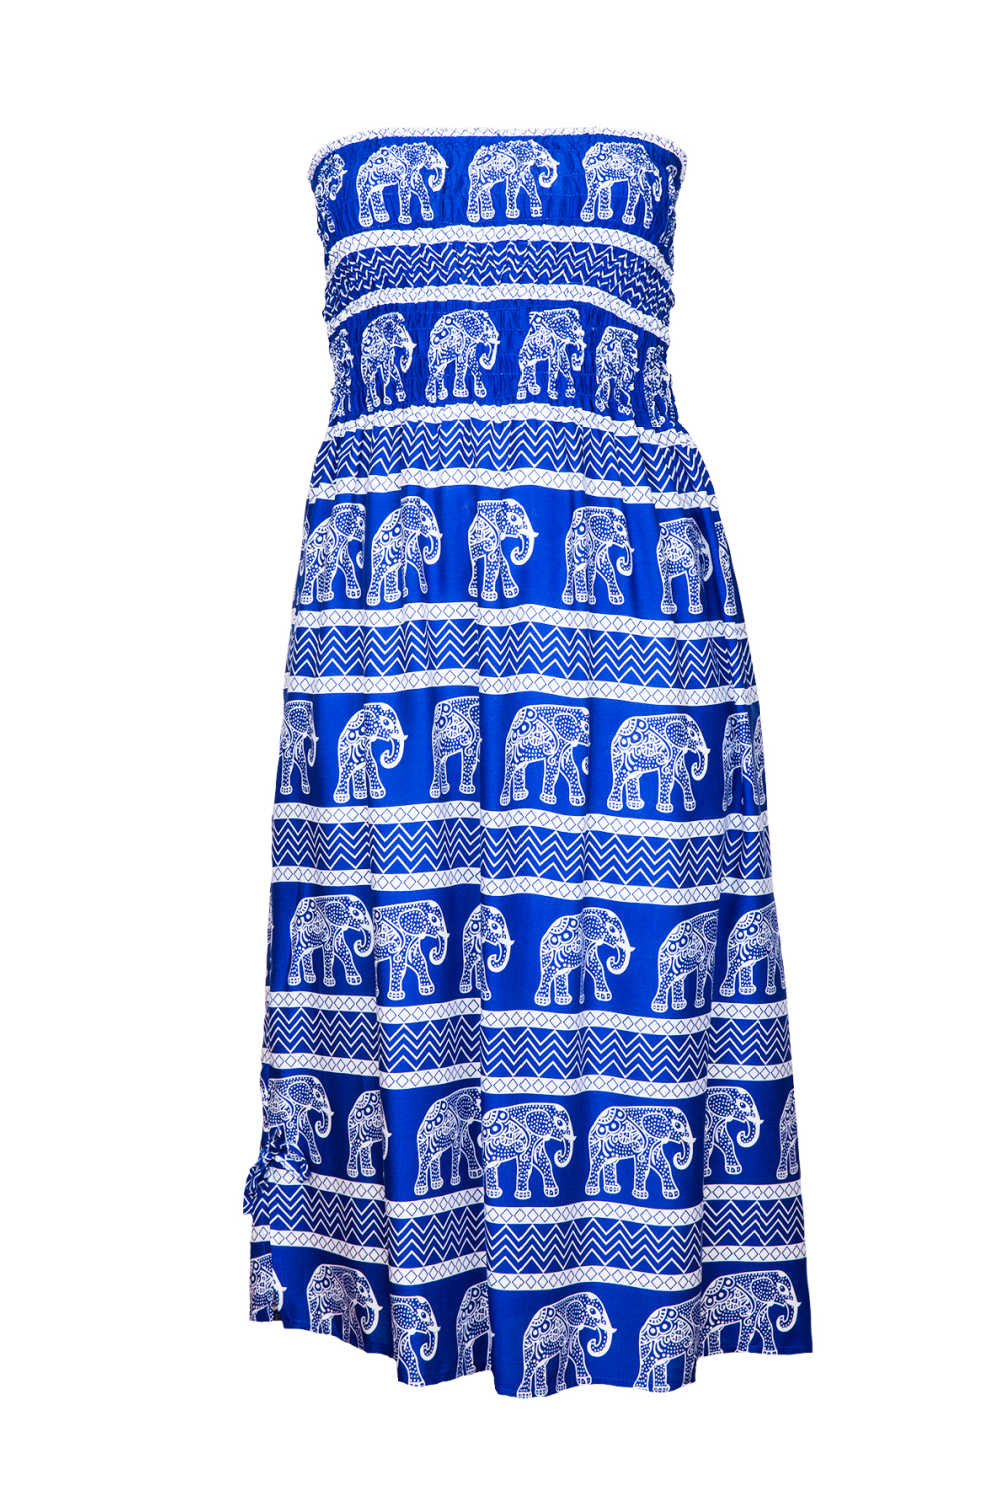 boob-tube-dress-blue-white-elephant-print